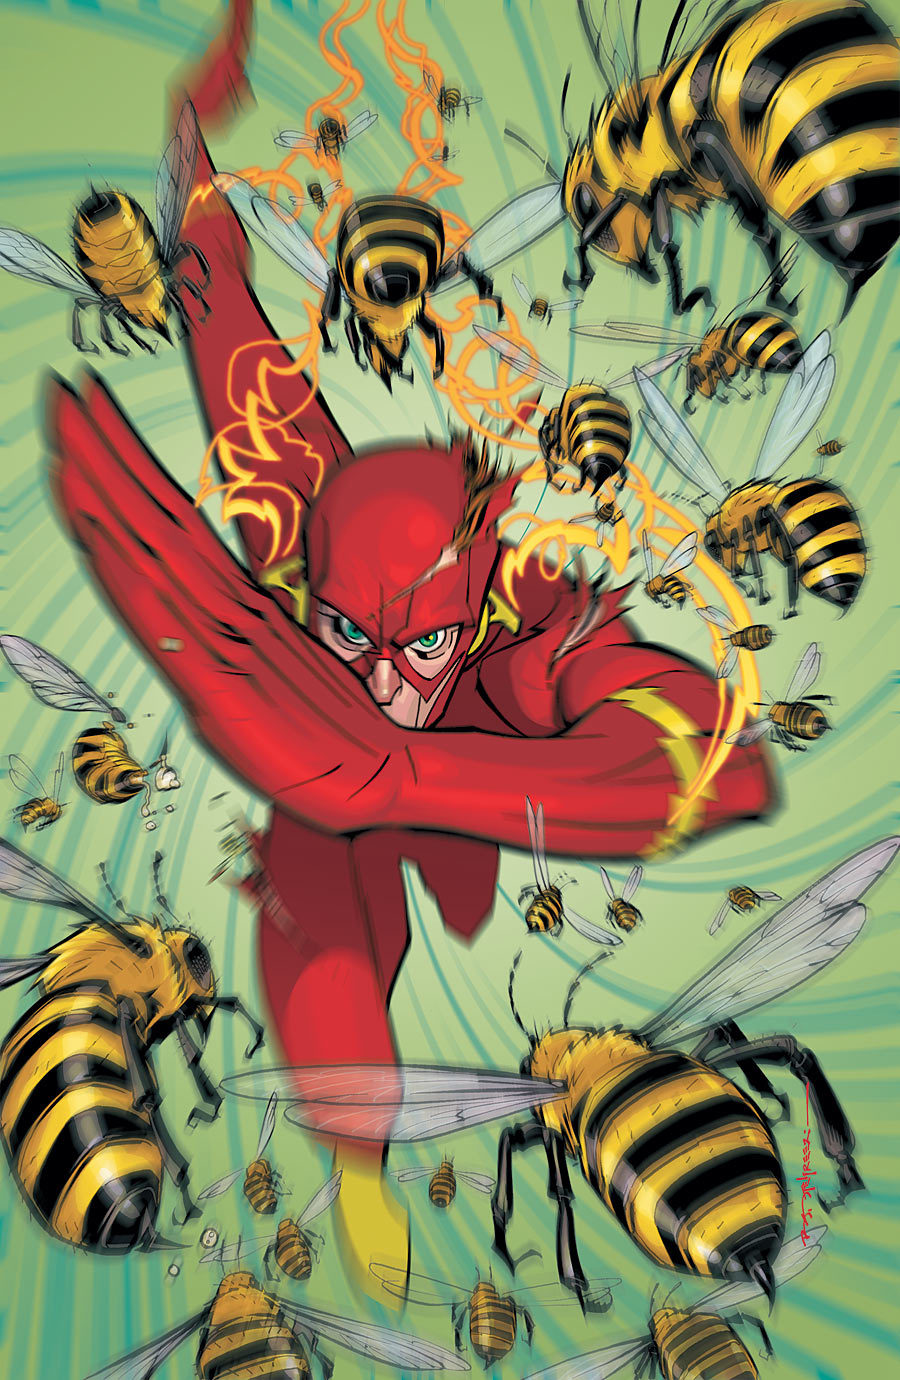 brian stelfreeze's flash. also, beeeeeeeeeeees!